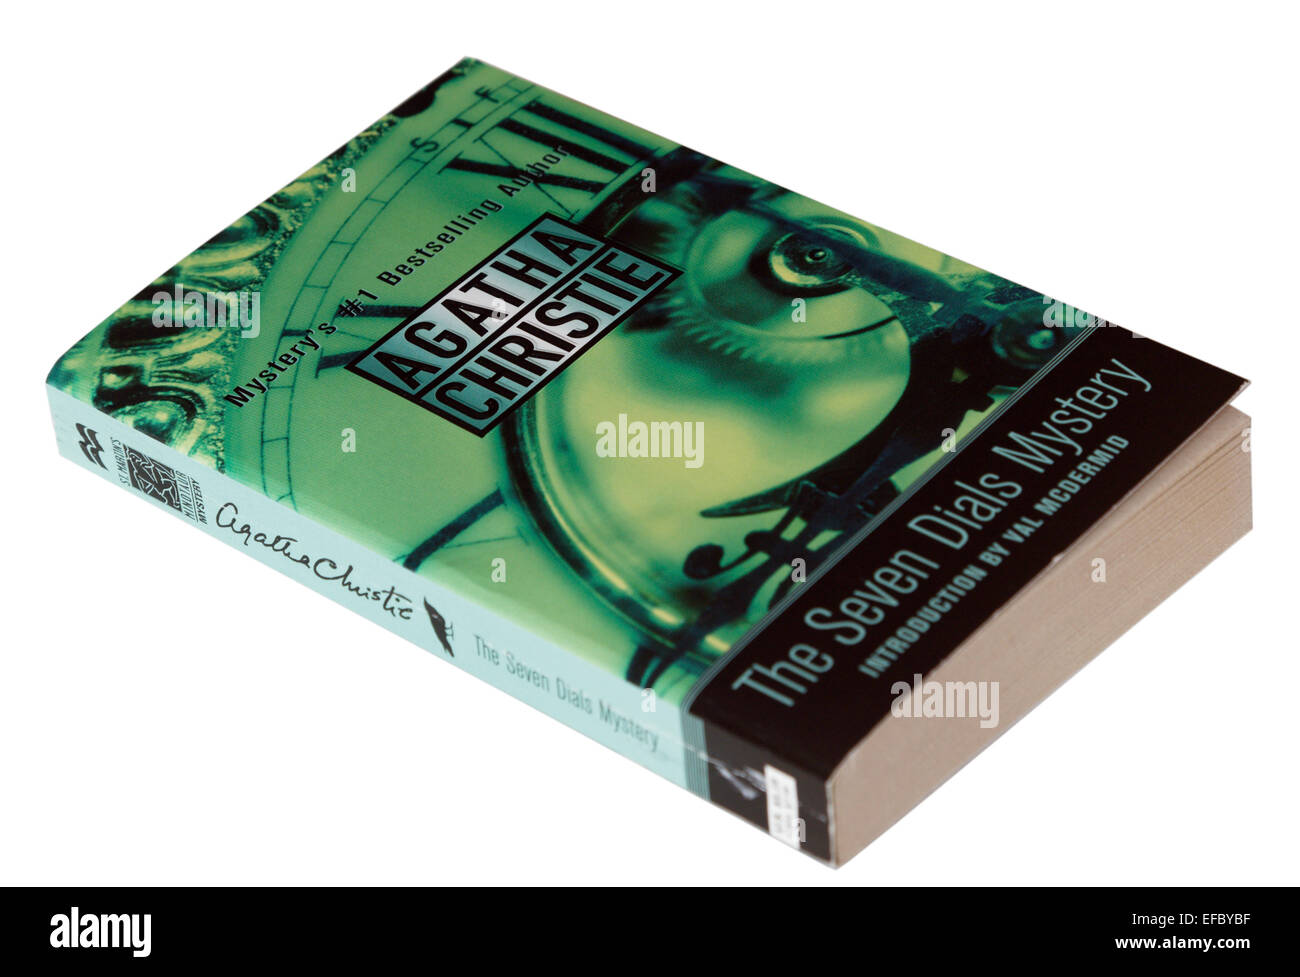 The Seven Dials Mystery by Agatha Christie - Stock Image